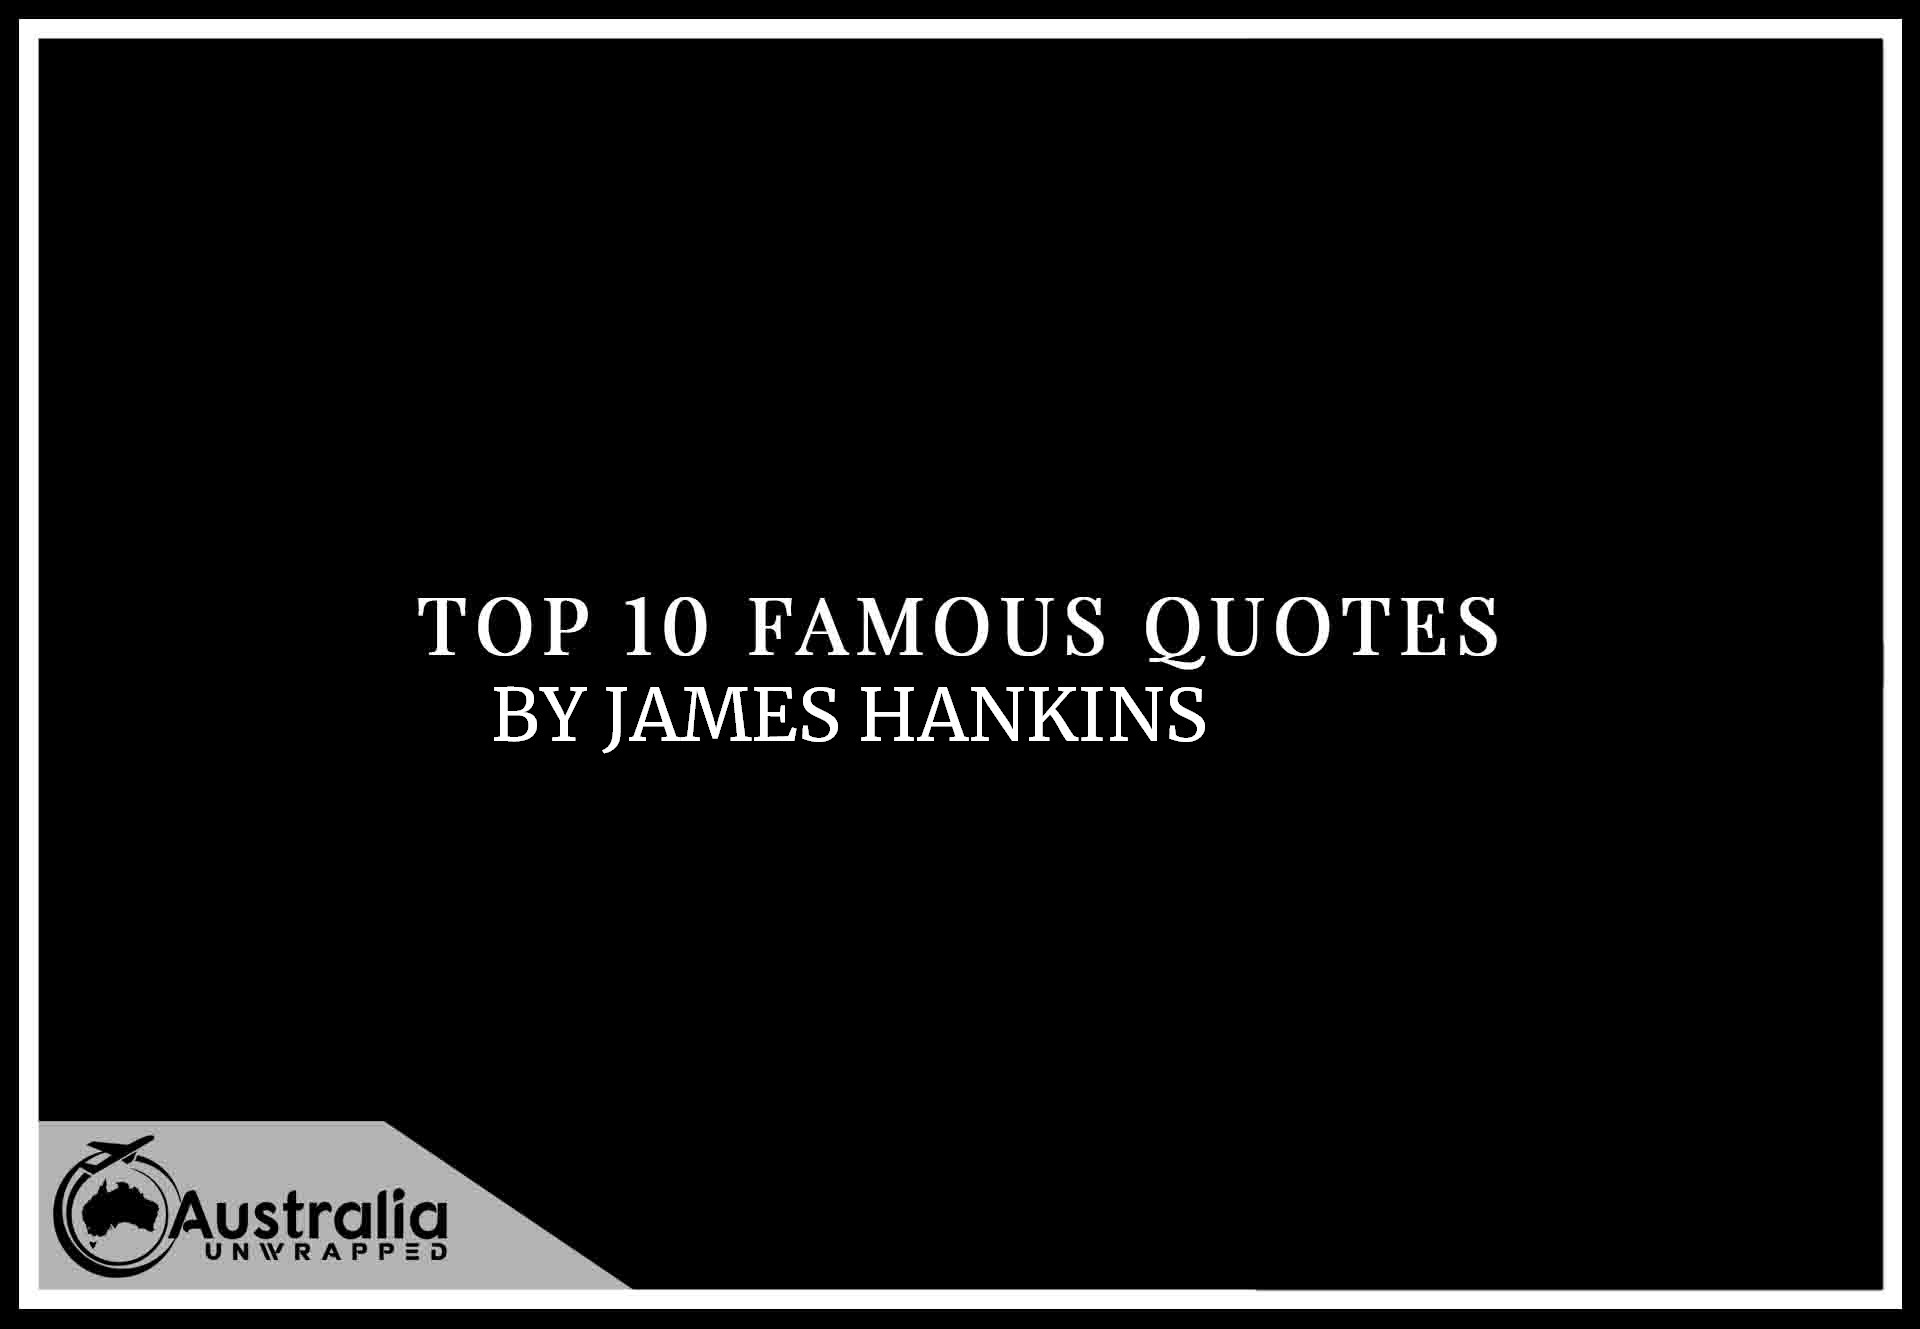 Top 10 Famous Quotes by Author James Hankins